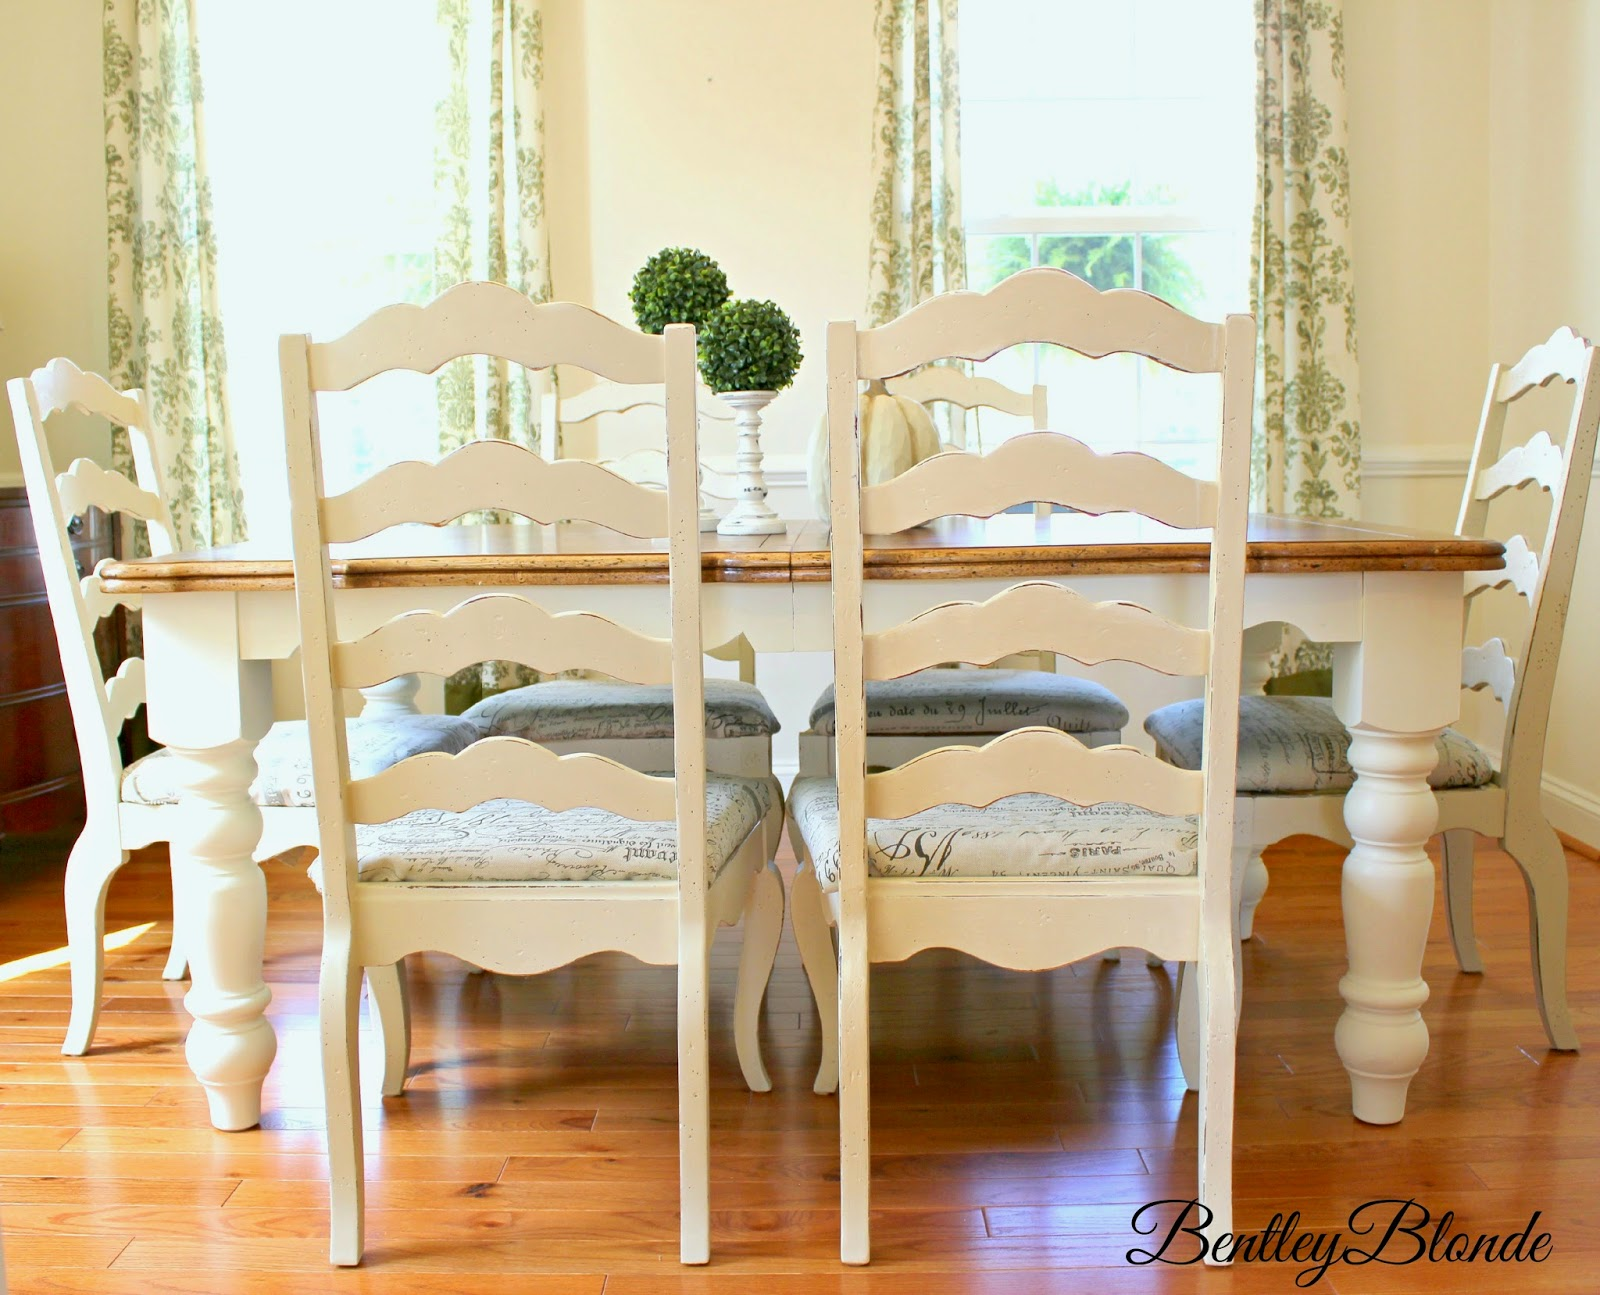 BentleyBlonde: DIY Farmhouse Table & Dining Set Makeover with Annie on repainting kitchen tables ideas, unique round kitchen tables, unique table centerpiece ideas, painting old furniture ideas, wall painting ideas, unique type walls, unique wall colors, diy painting ideas, modern kitchen paint color ideas, unique wall art ideas, unique kitchen tables refinished, master bedroom color ideas, unique coffee table ideas, painting kitchen chairs ideas, wooden dresser painting ideas,